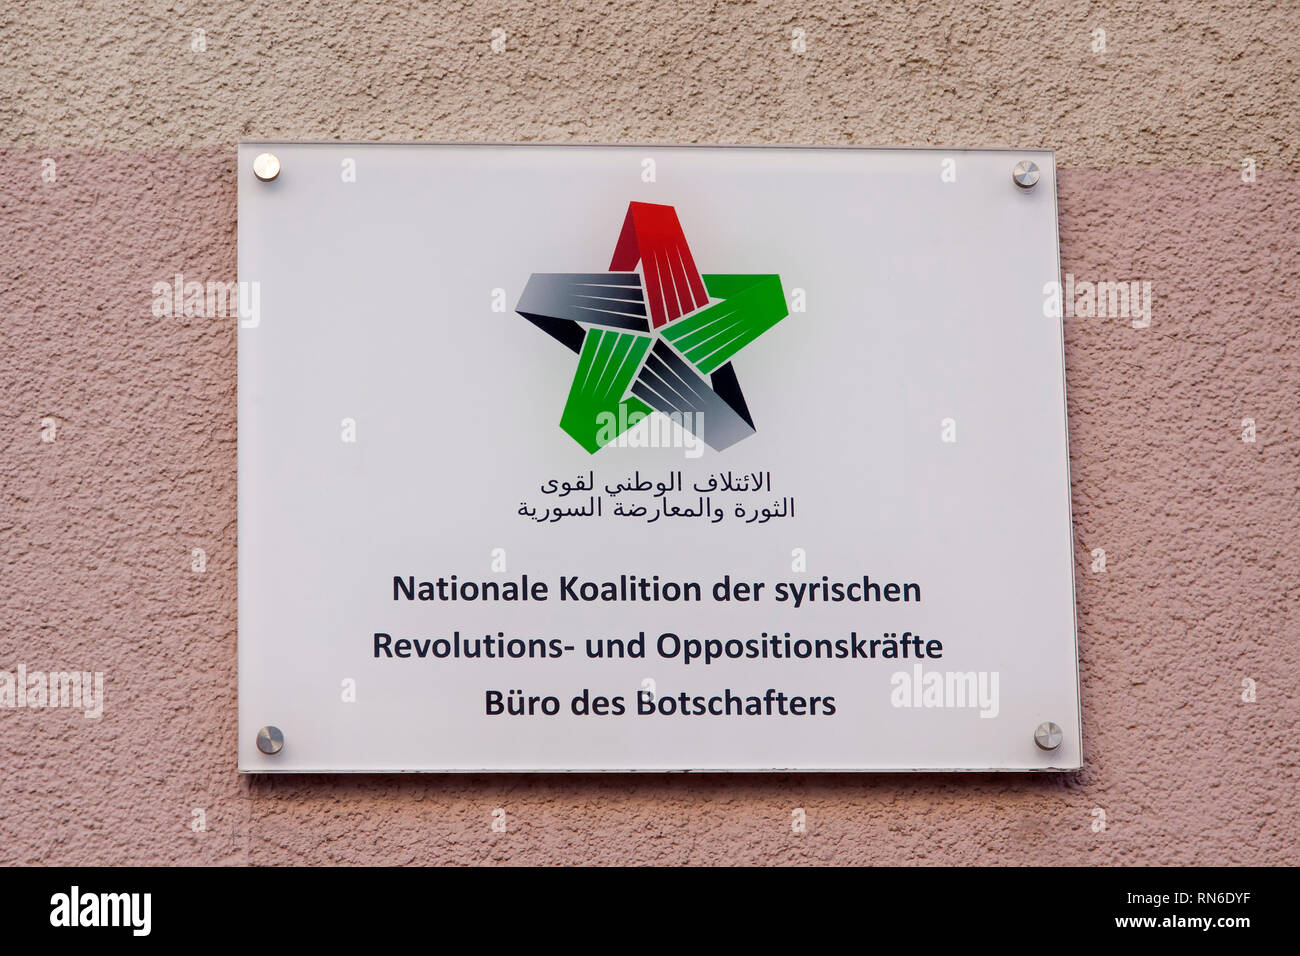 Sign: National Coalition of Syrian Revolutionary and Opposition Forces, Office of the Ambassador, Berlin, Germany - Stock Image